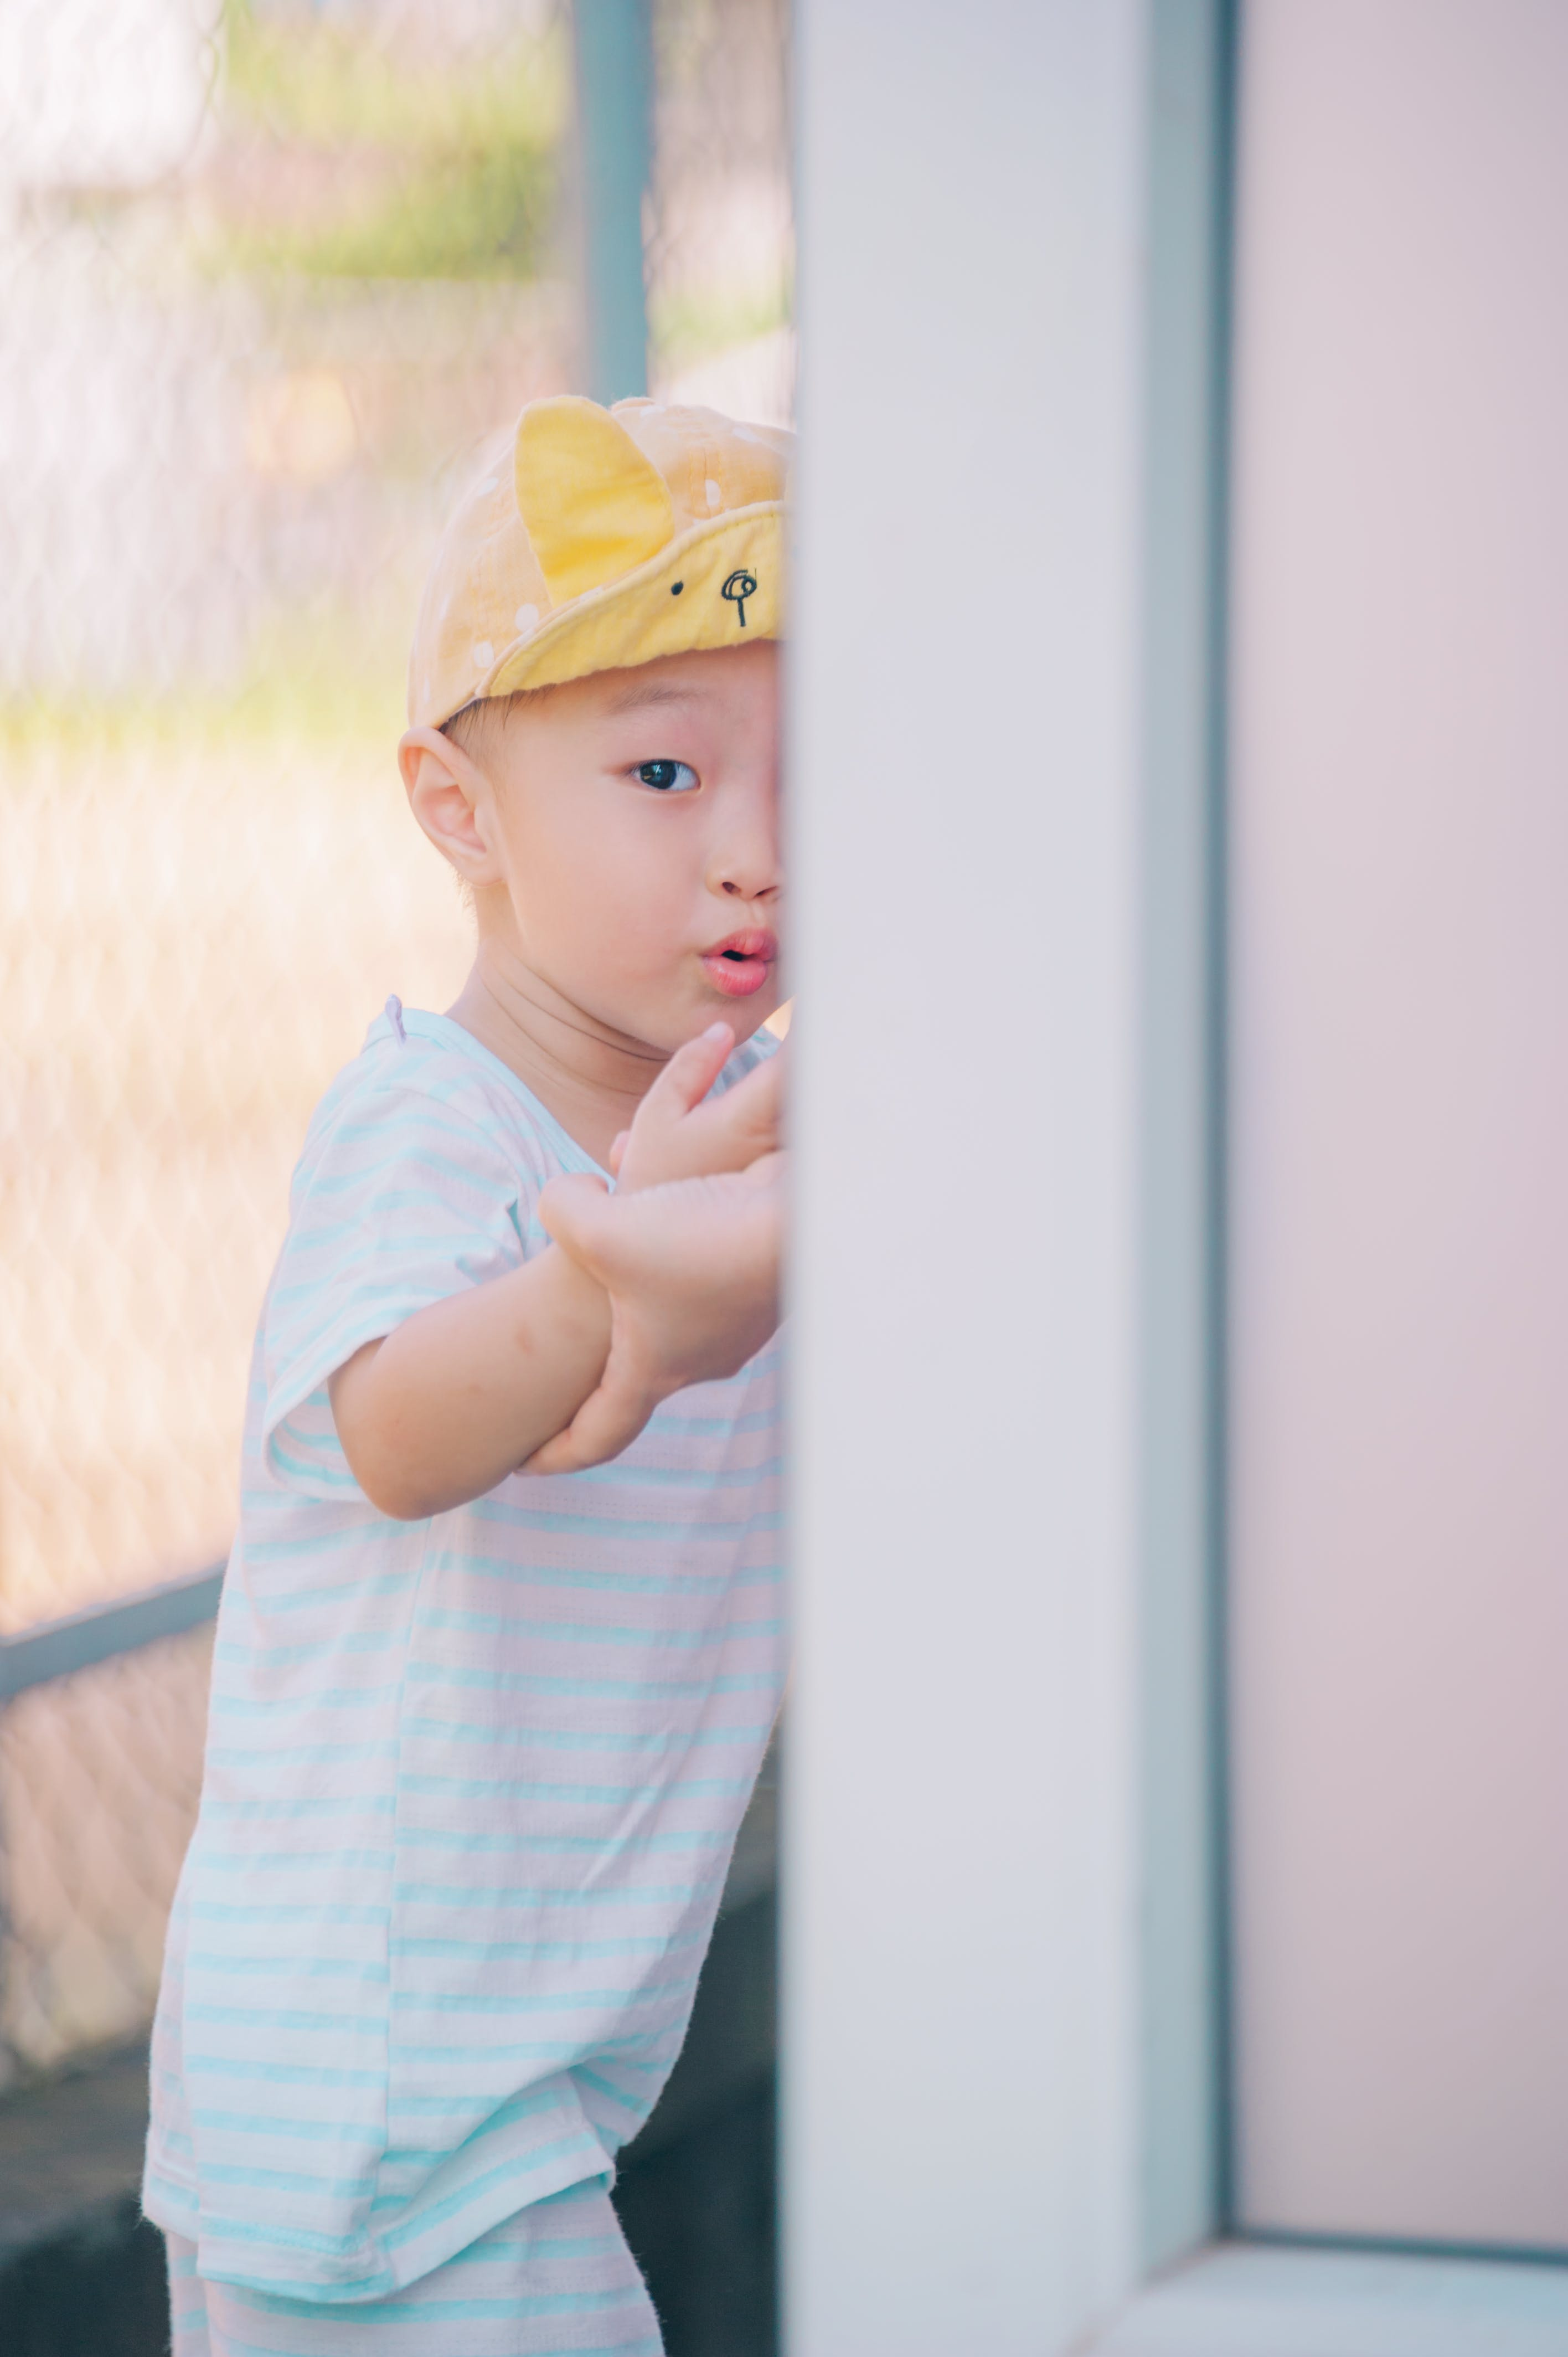 Selective Focus Photo of Child Wearing Cap